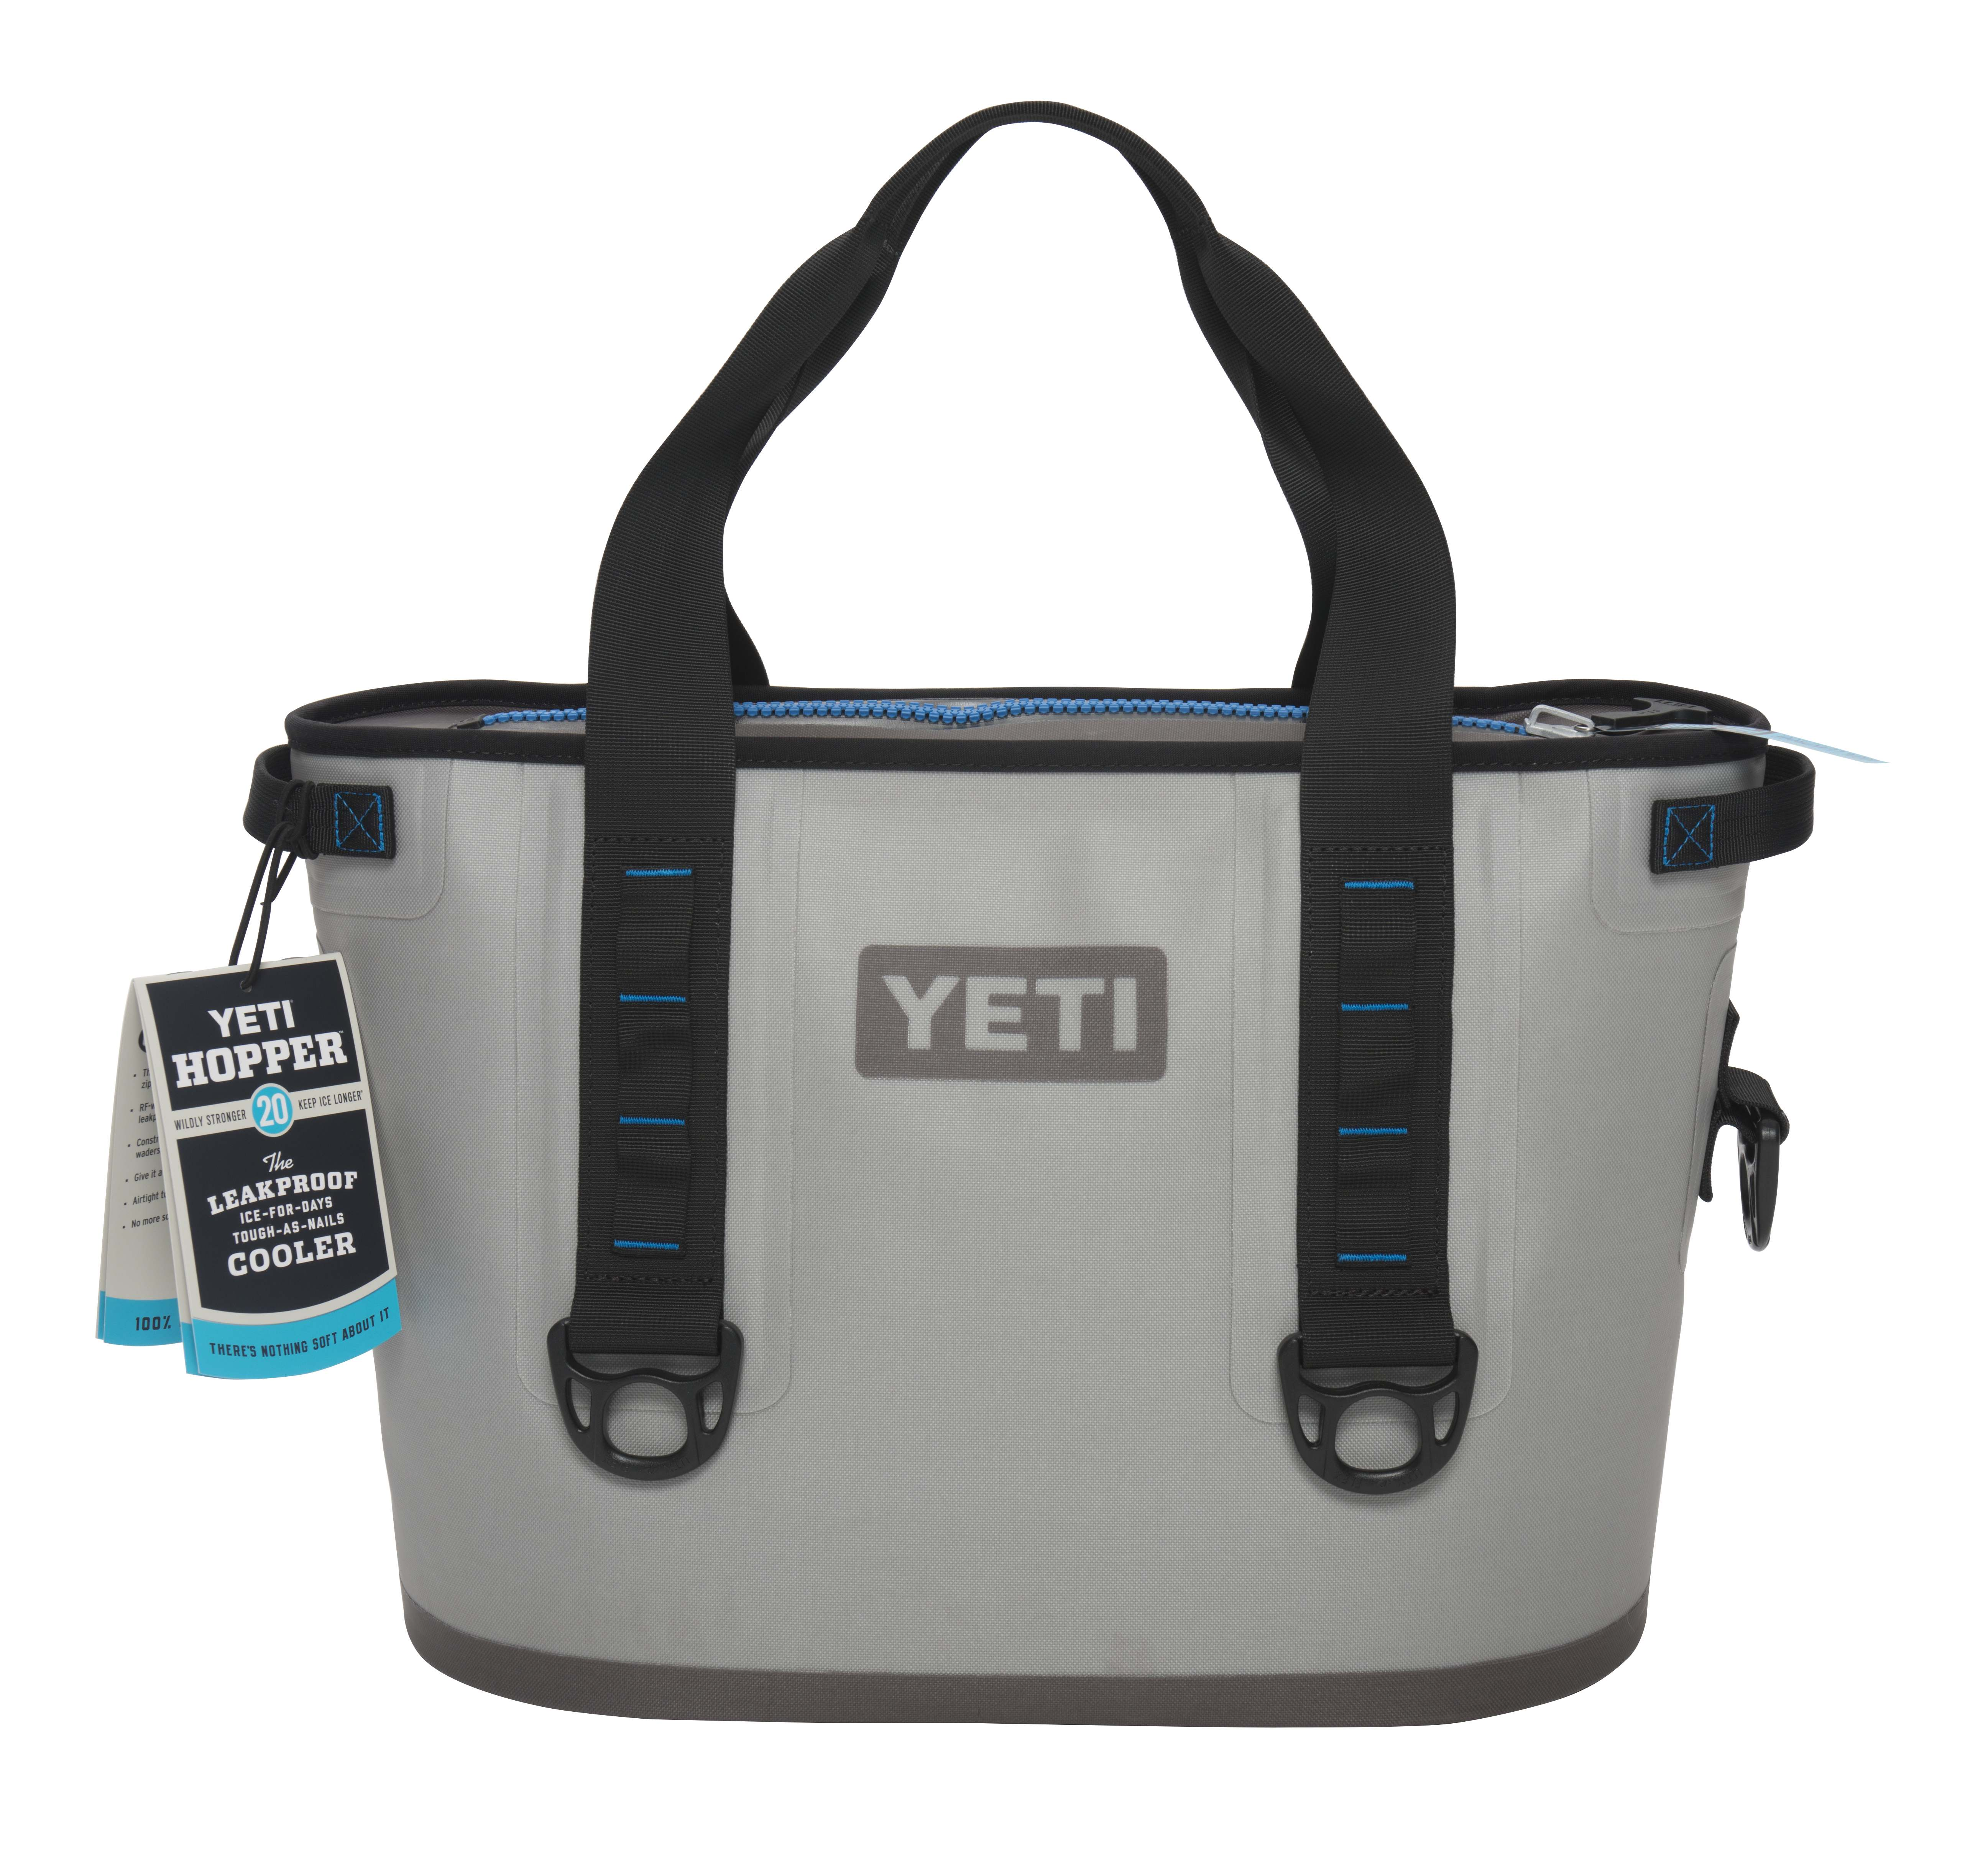 YETI Hopper 20 Wins Best of Show - Boating Accessories ...